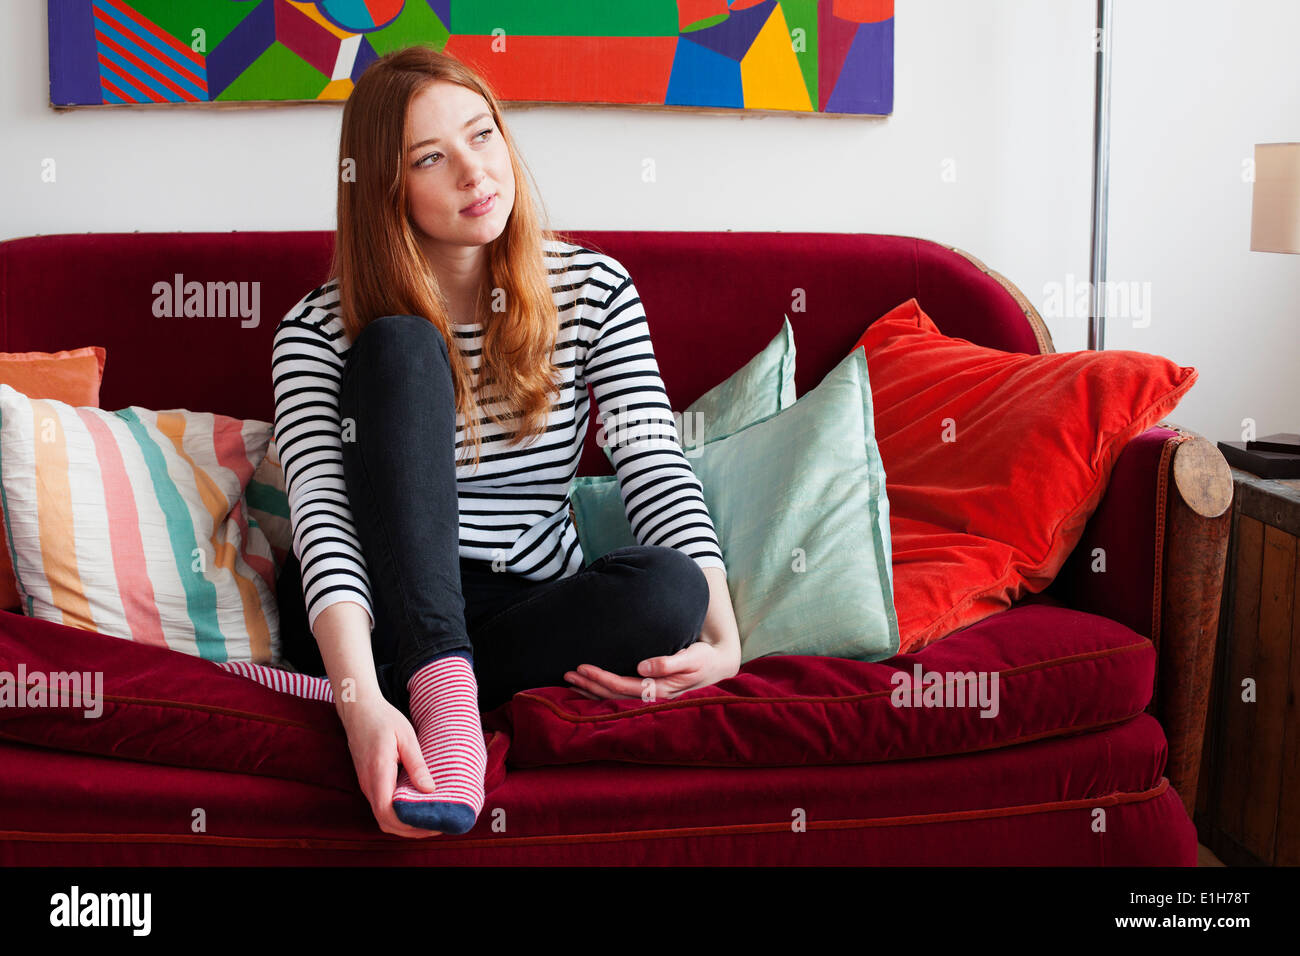 Young woman sitting on sofa with feet up - Stock Image